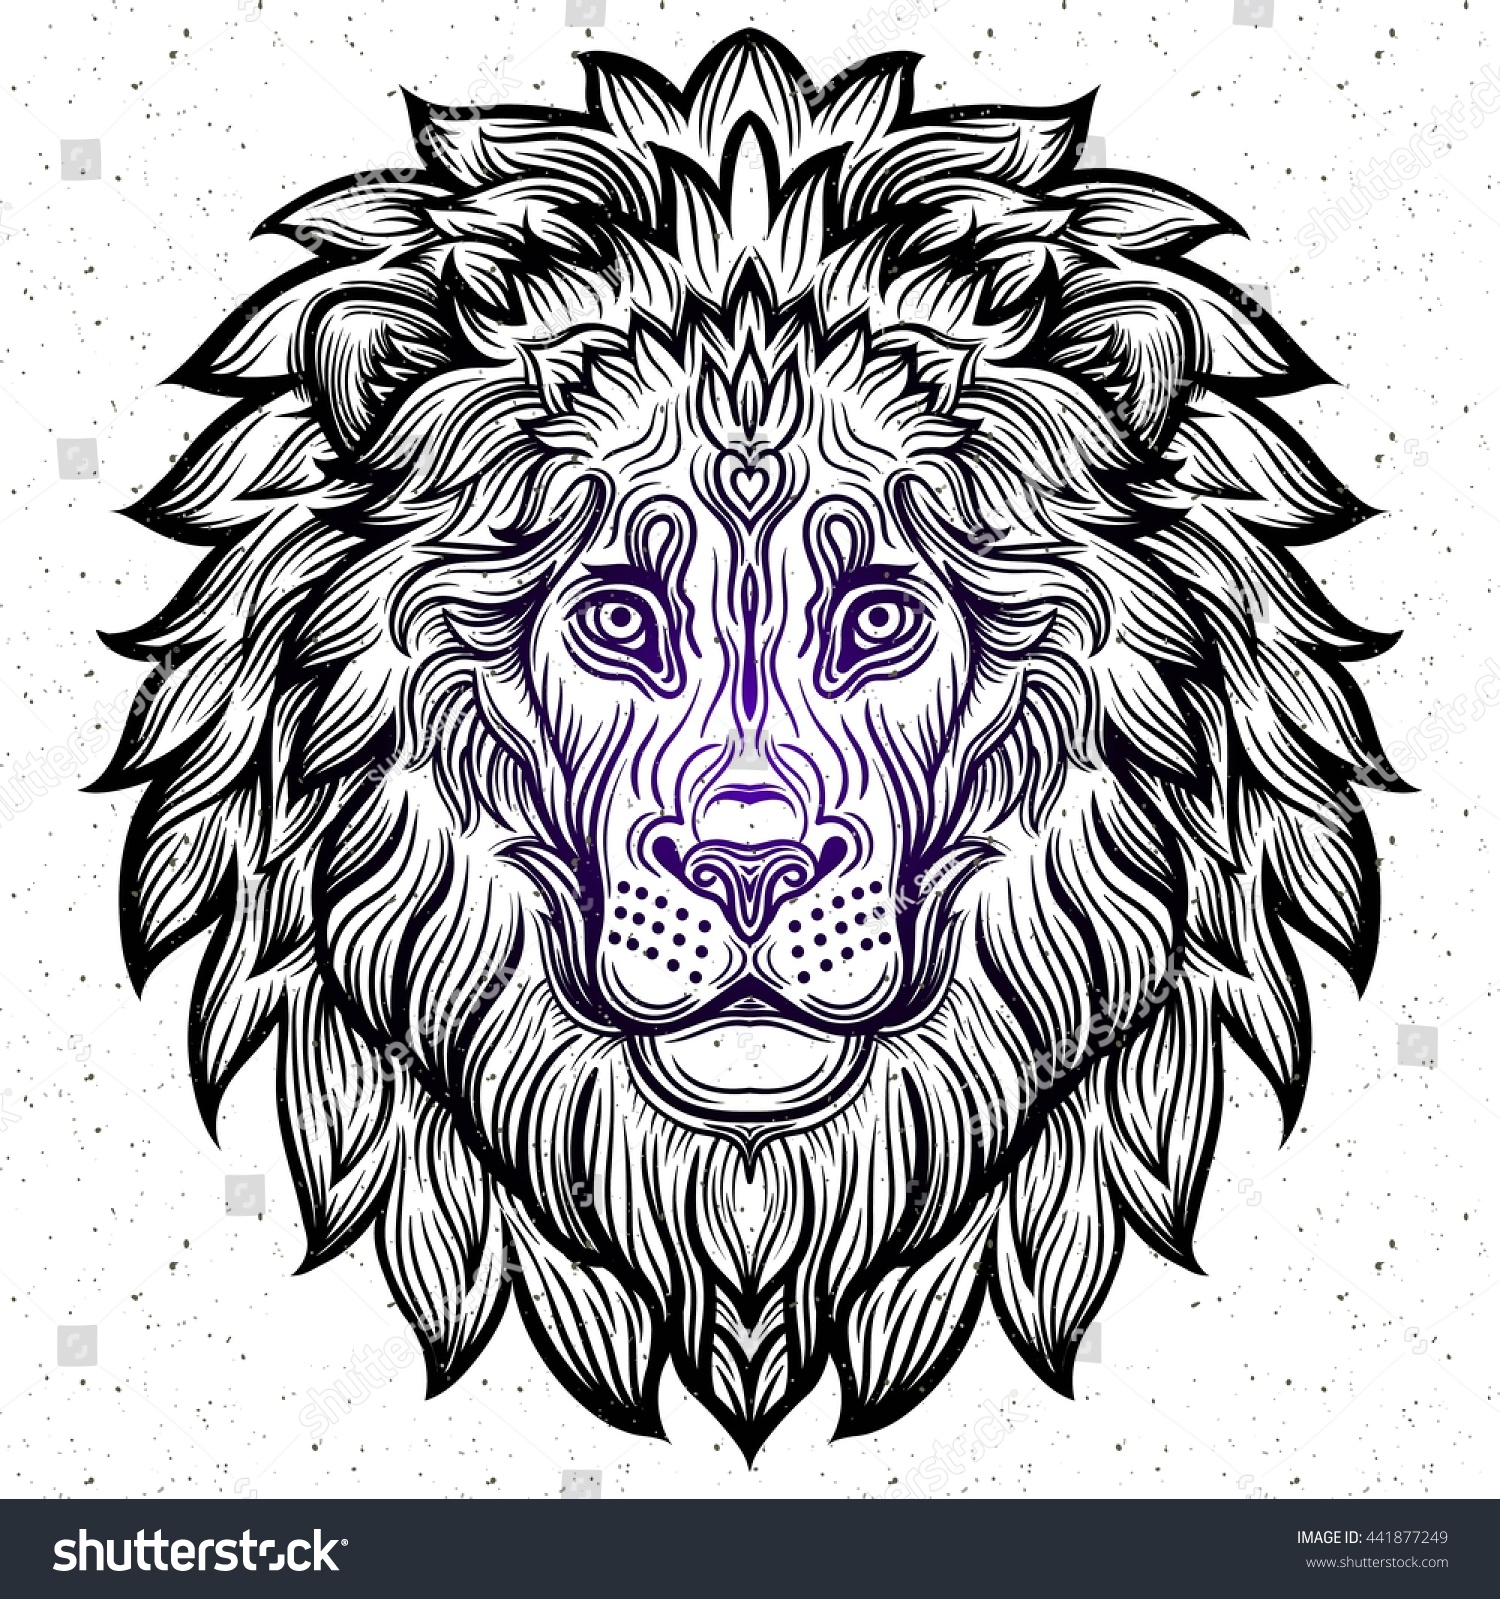 Detailed Line Drawings Of Animals : Detailed lion aztec filigree line art 库存矢量图